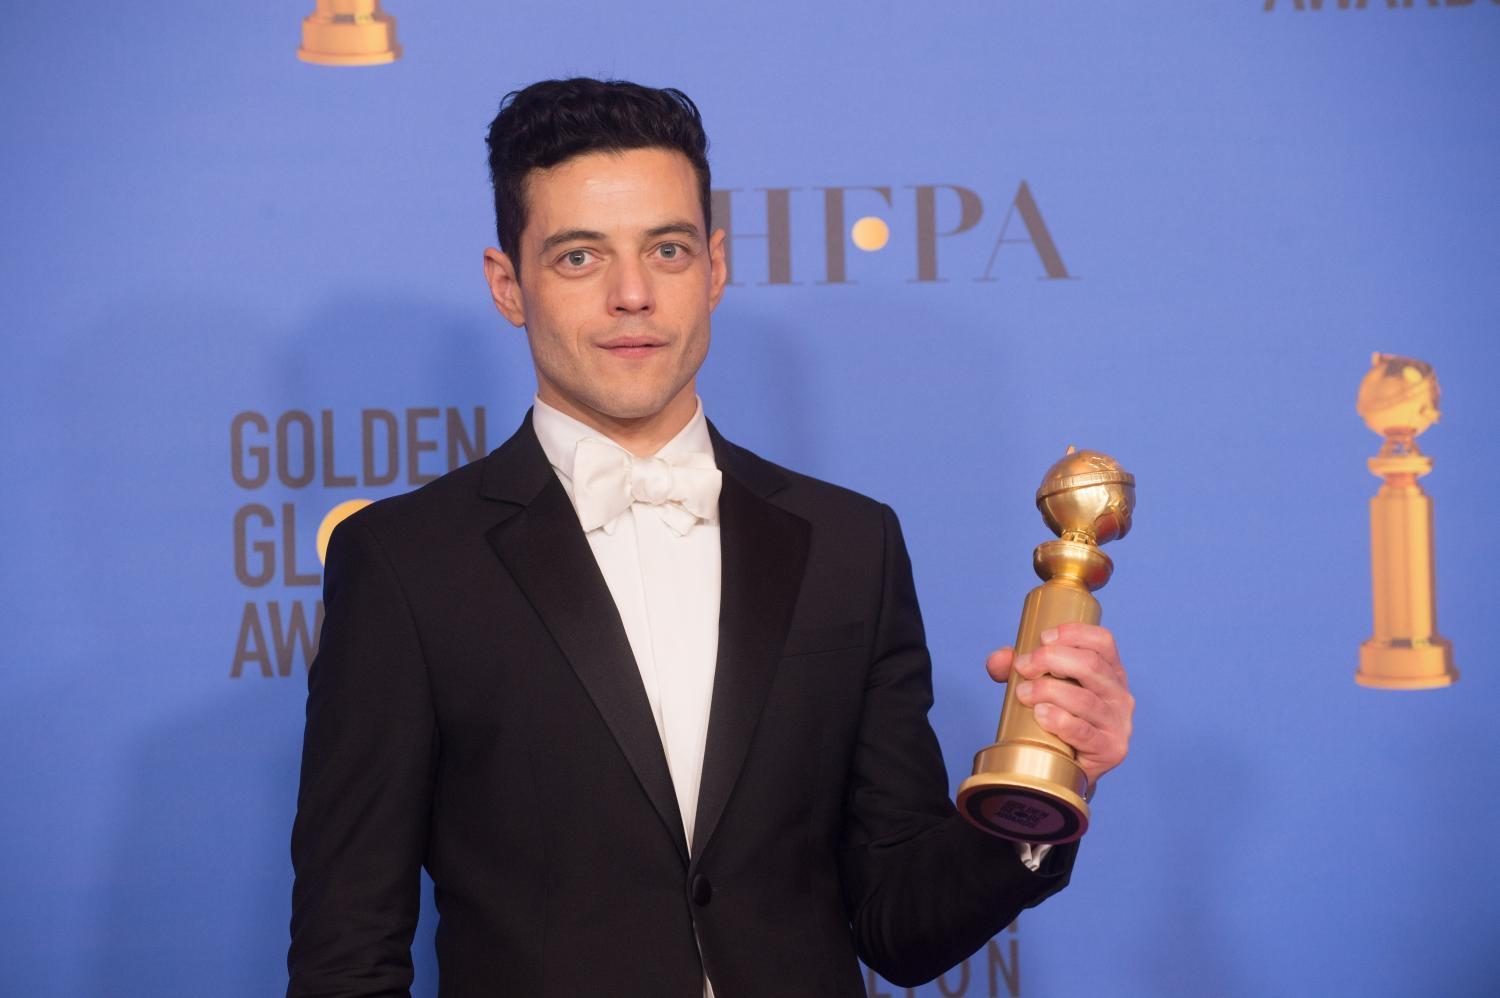 rami malek at the golden globes